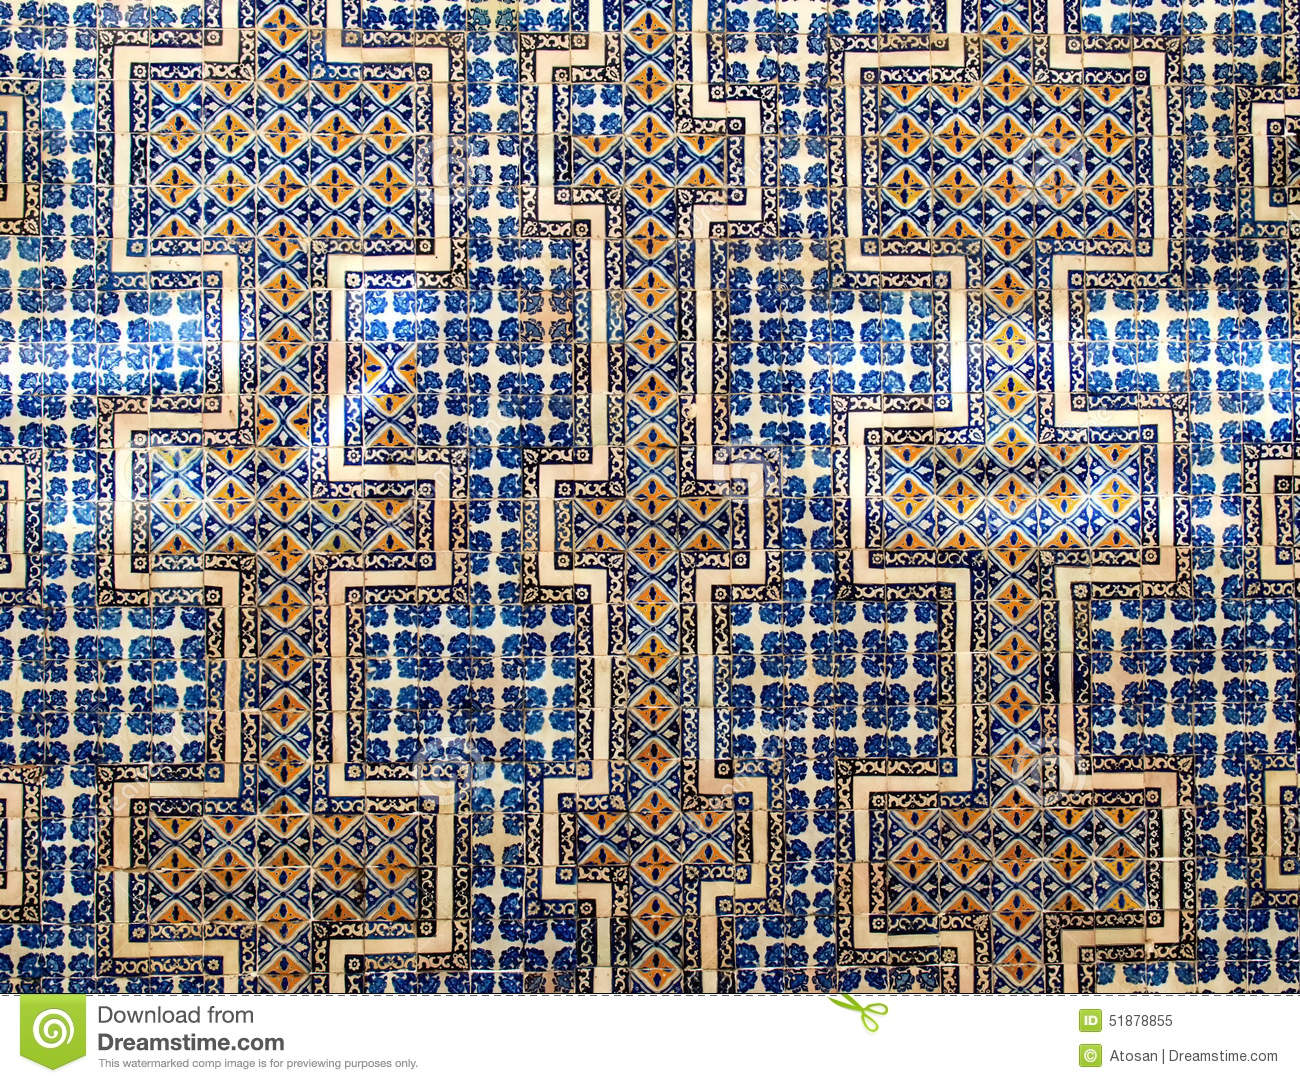 The casa de los azulejos wall stock photo image 51878855 for Casa de los azulejos villahermosa